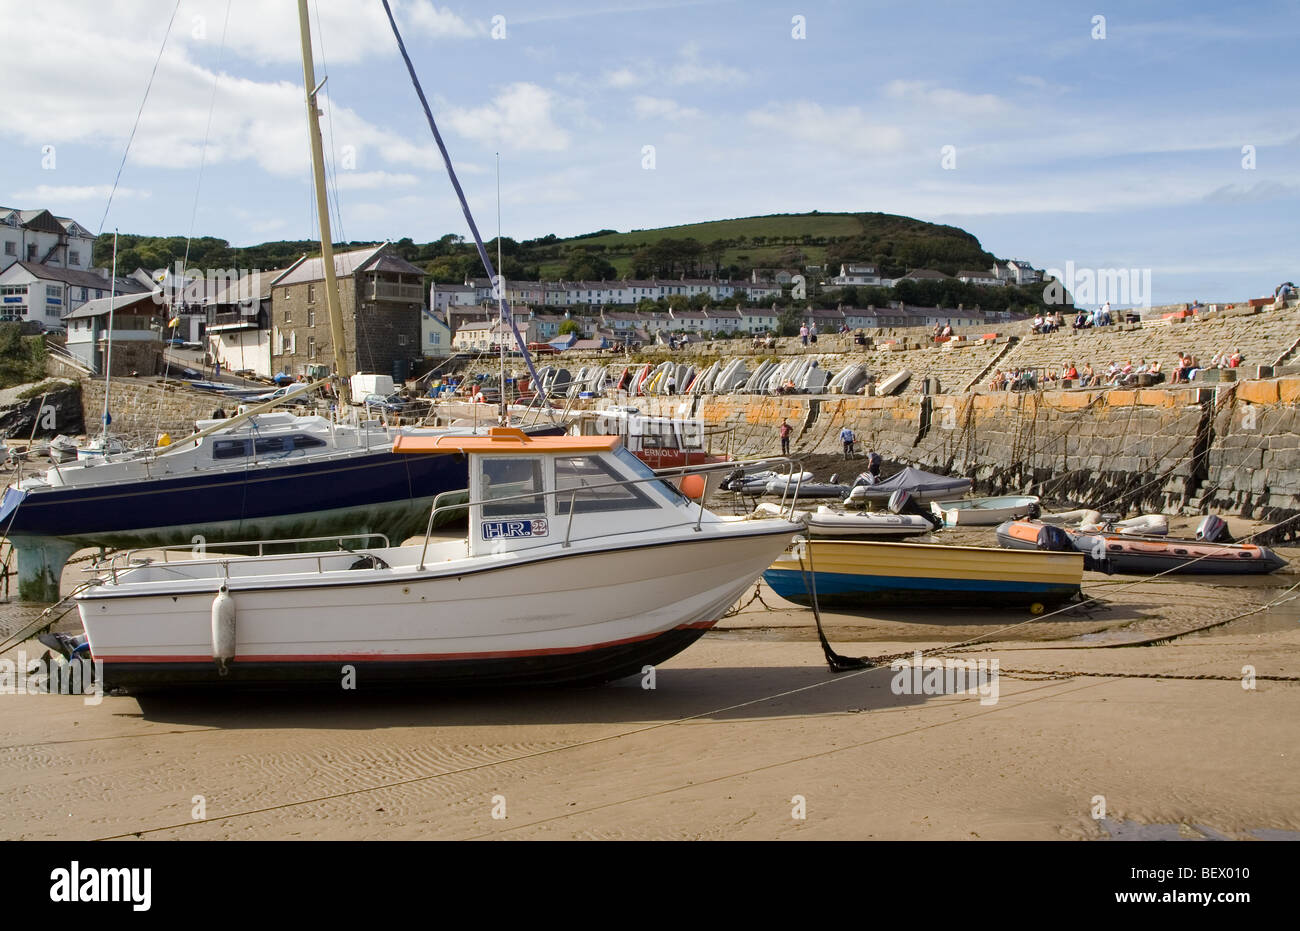 New Quay Harbor in West Wales - Stock Image